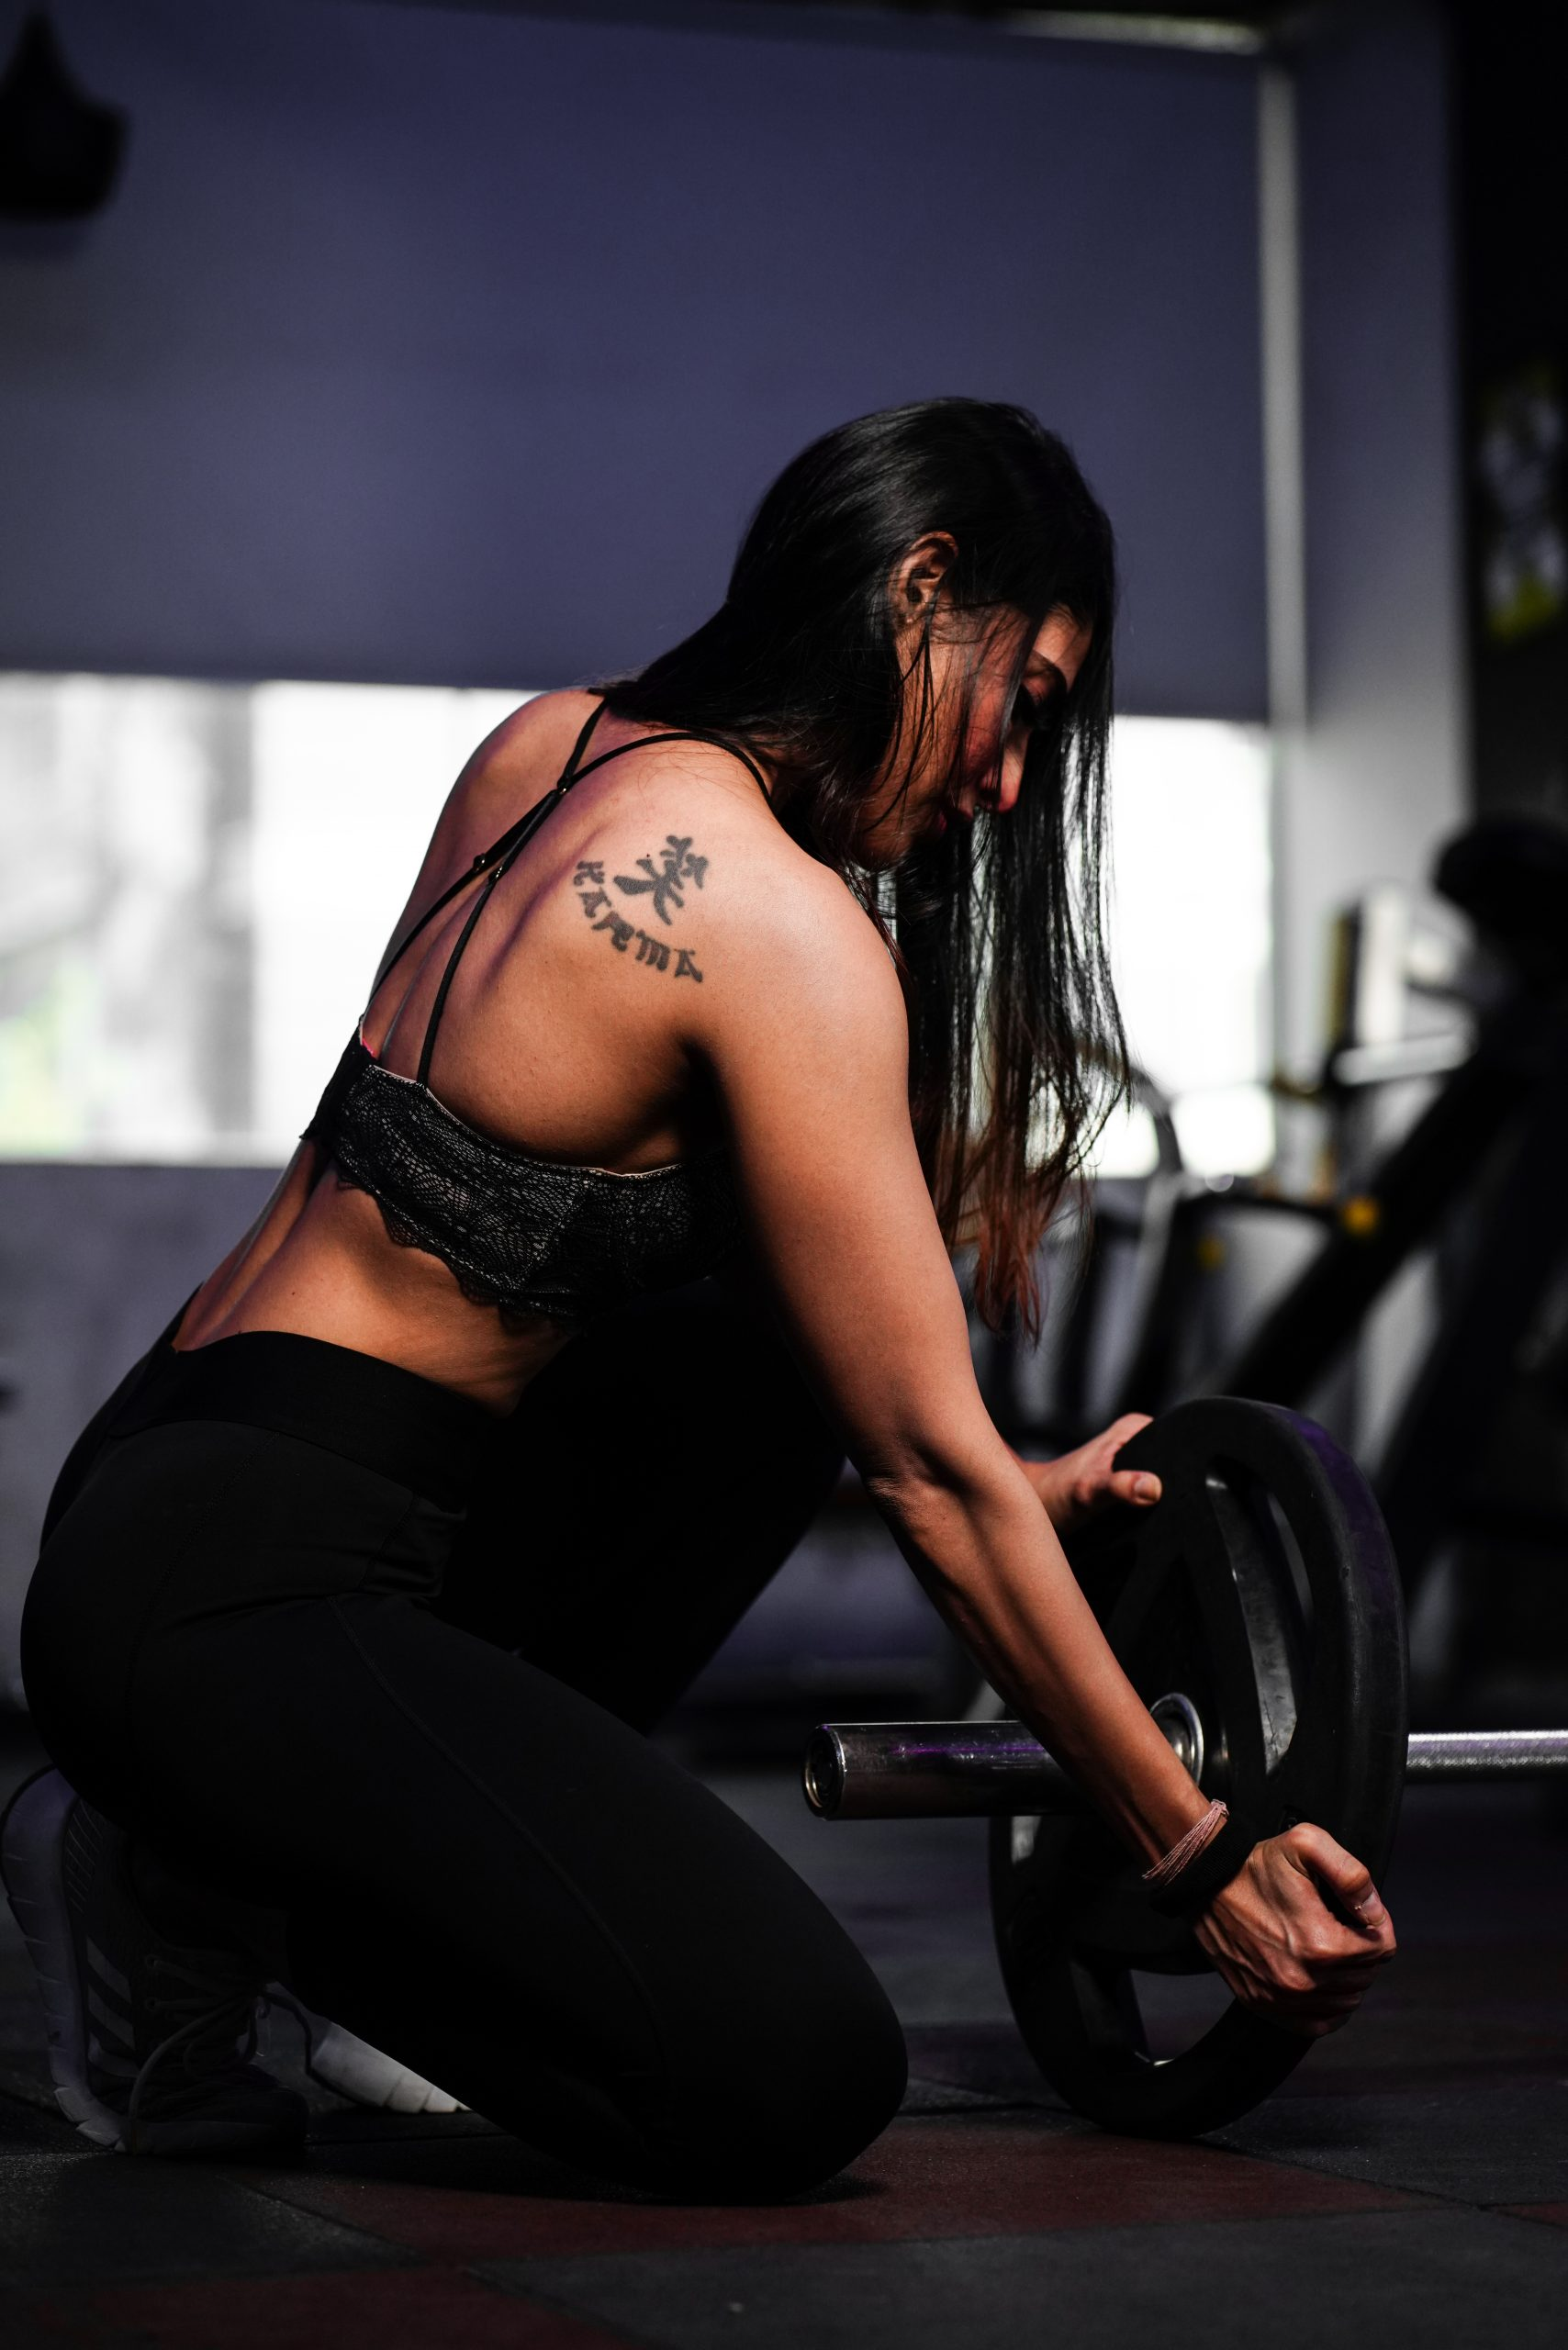 Tattooed Girl removing barbell wheel after exercise